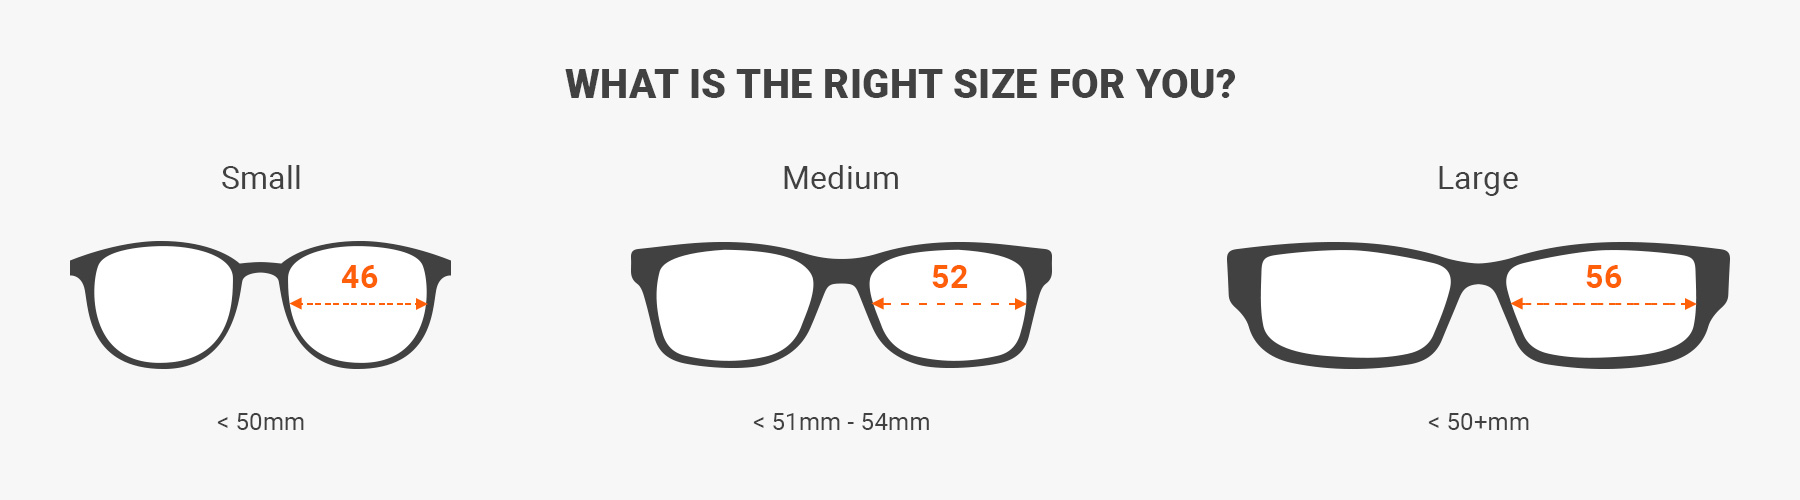 a7ae4ca96856 how to read sunglasses measurements - Measure sunglasses size with a ruler